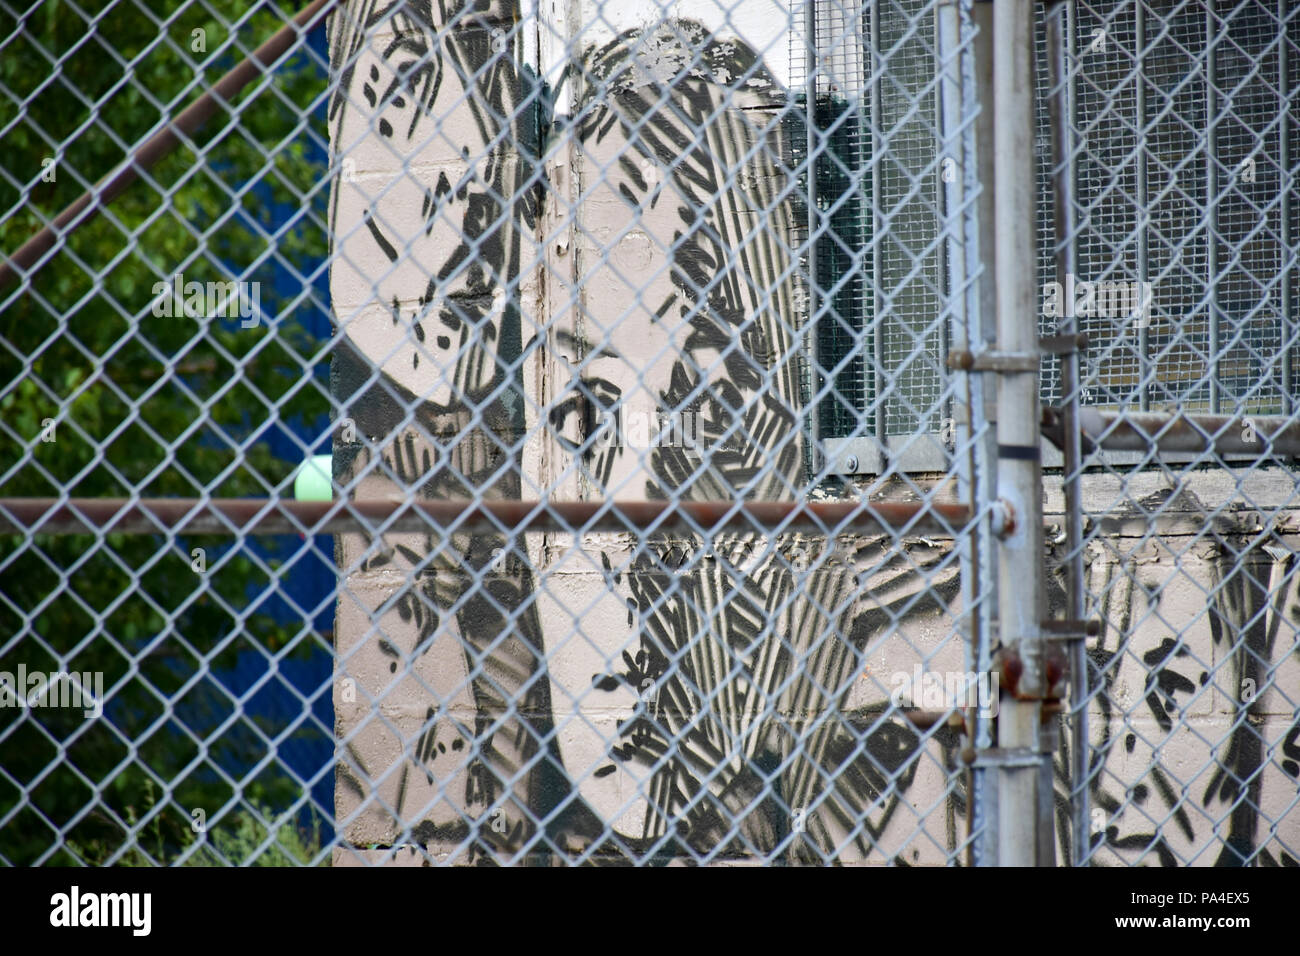 metaphors in fences